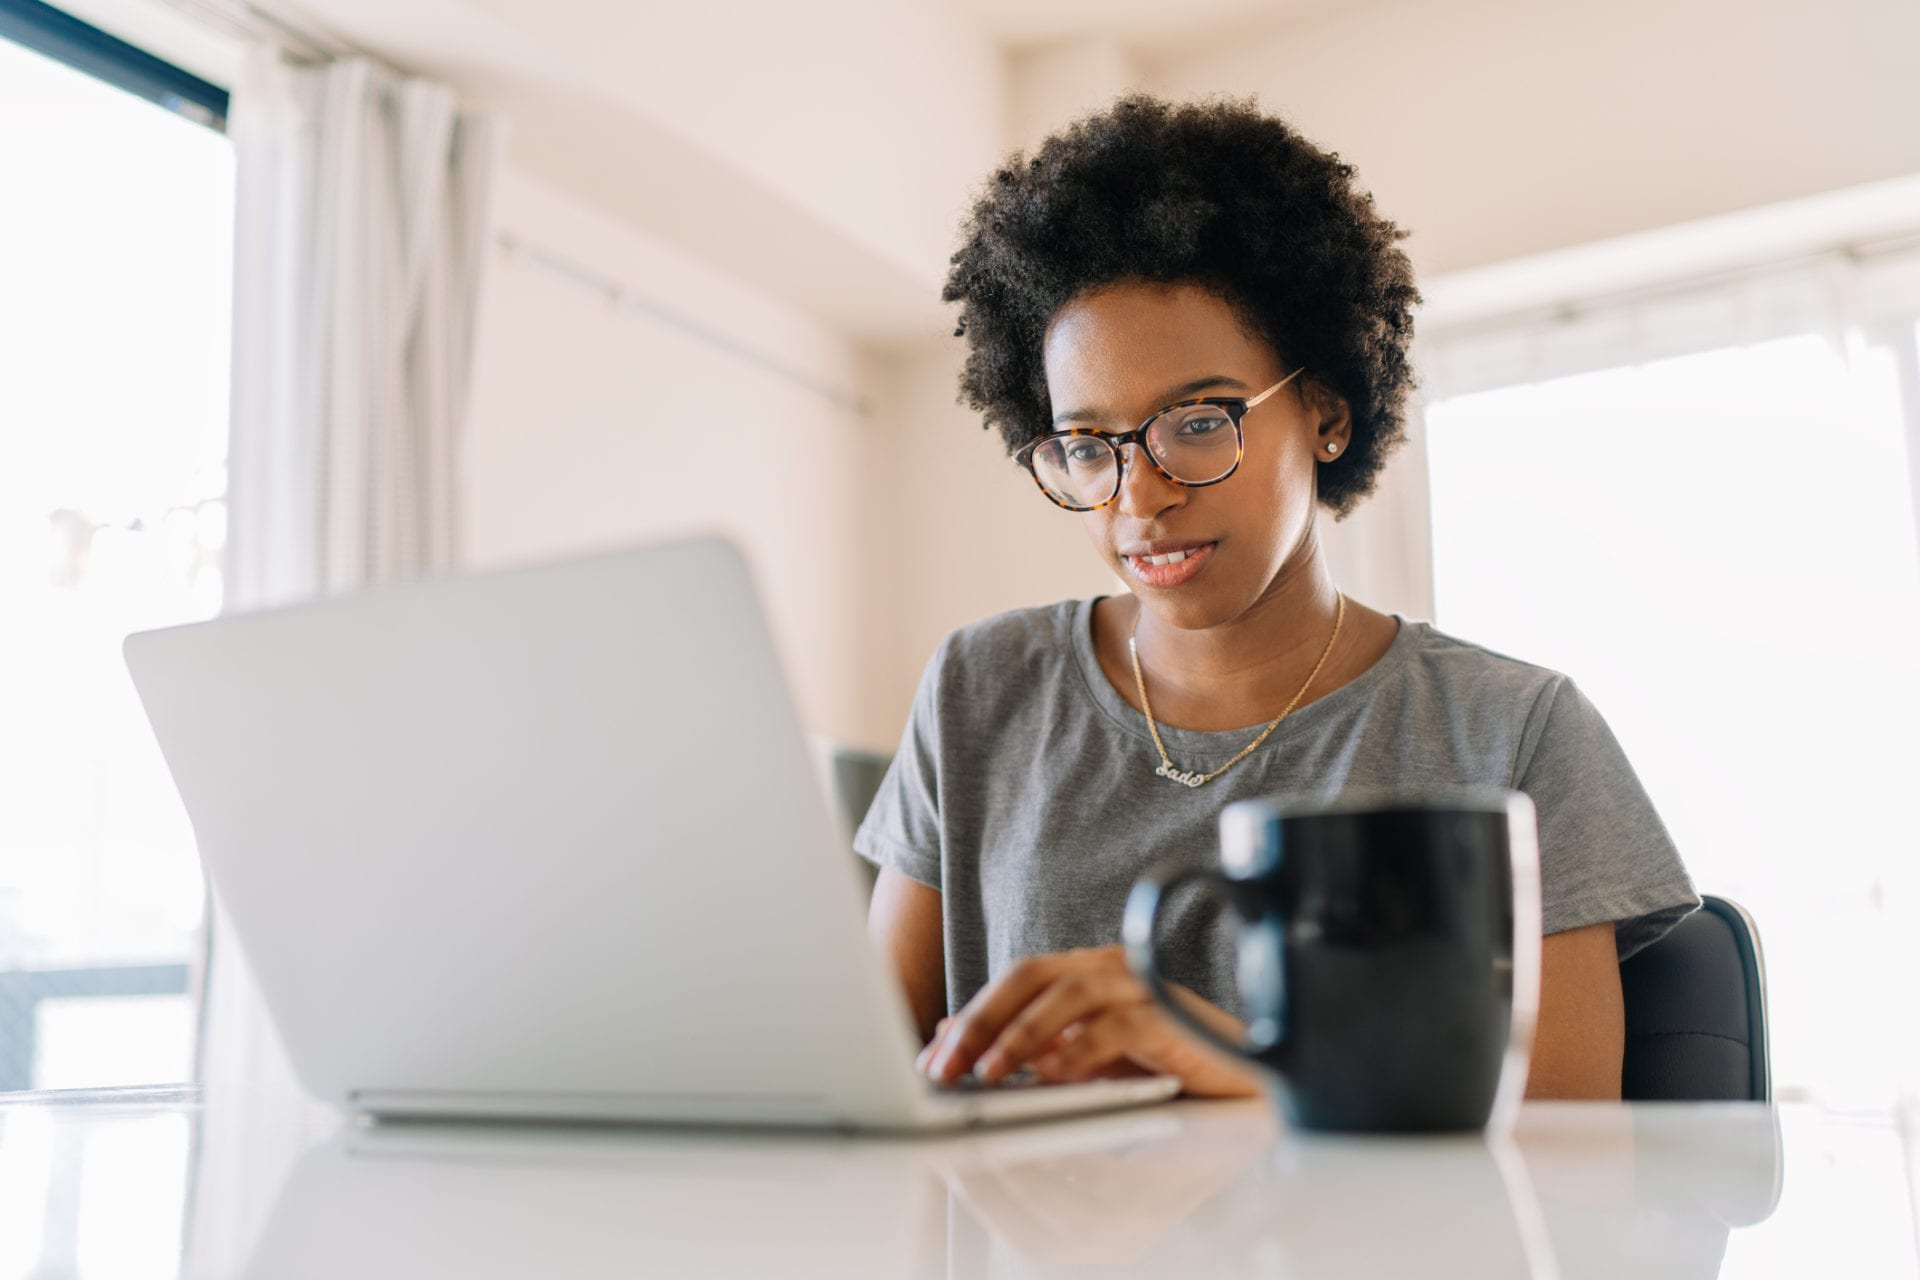 woman browses knowledge management system on laptop at home